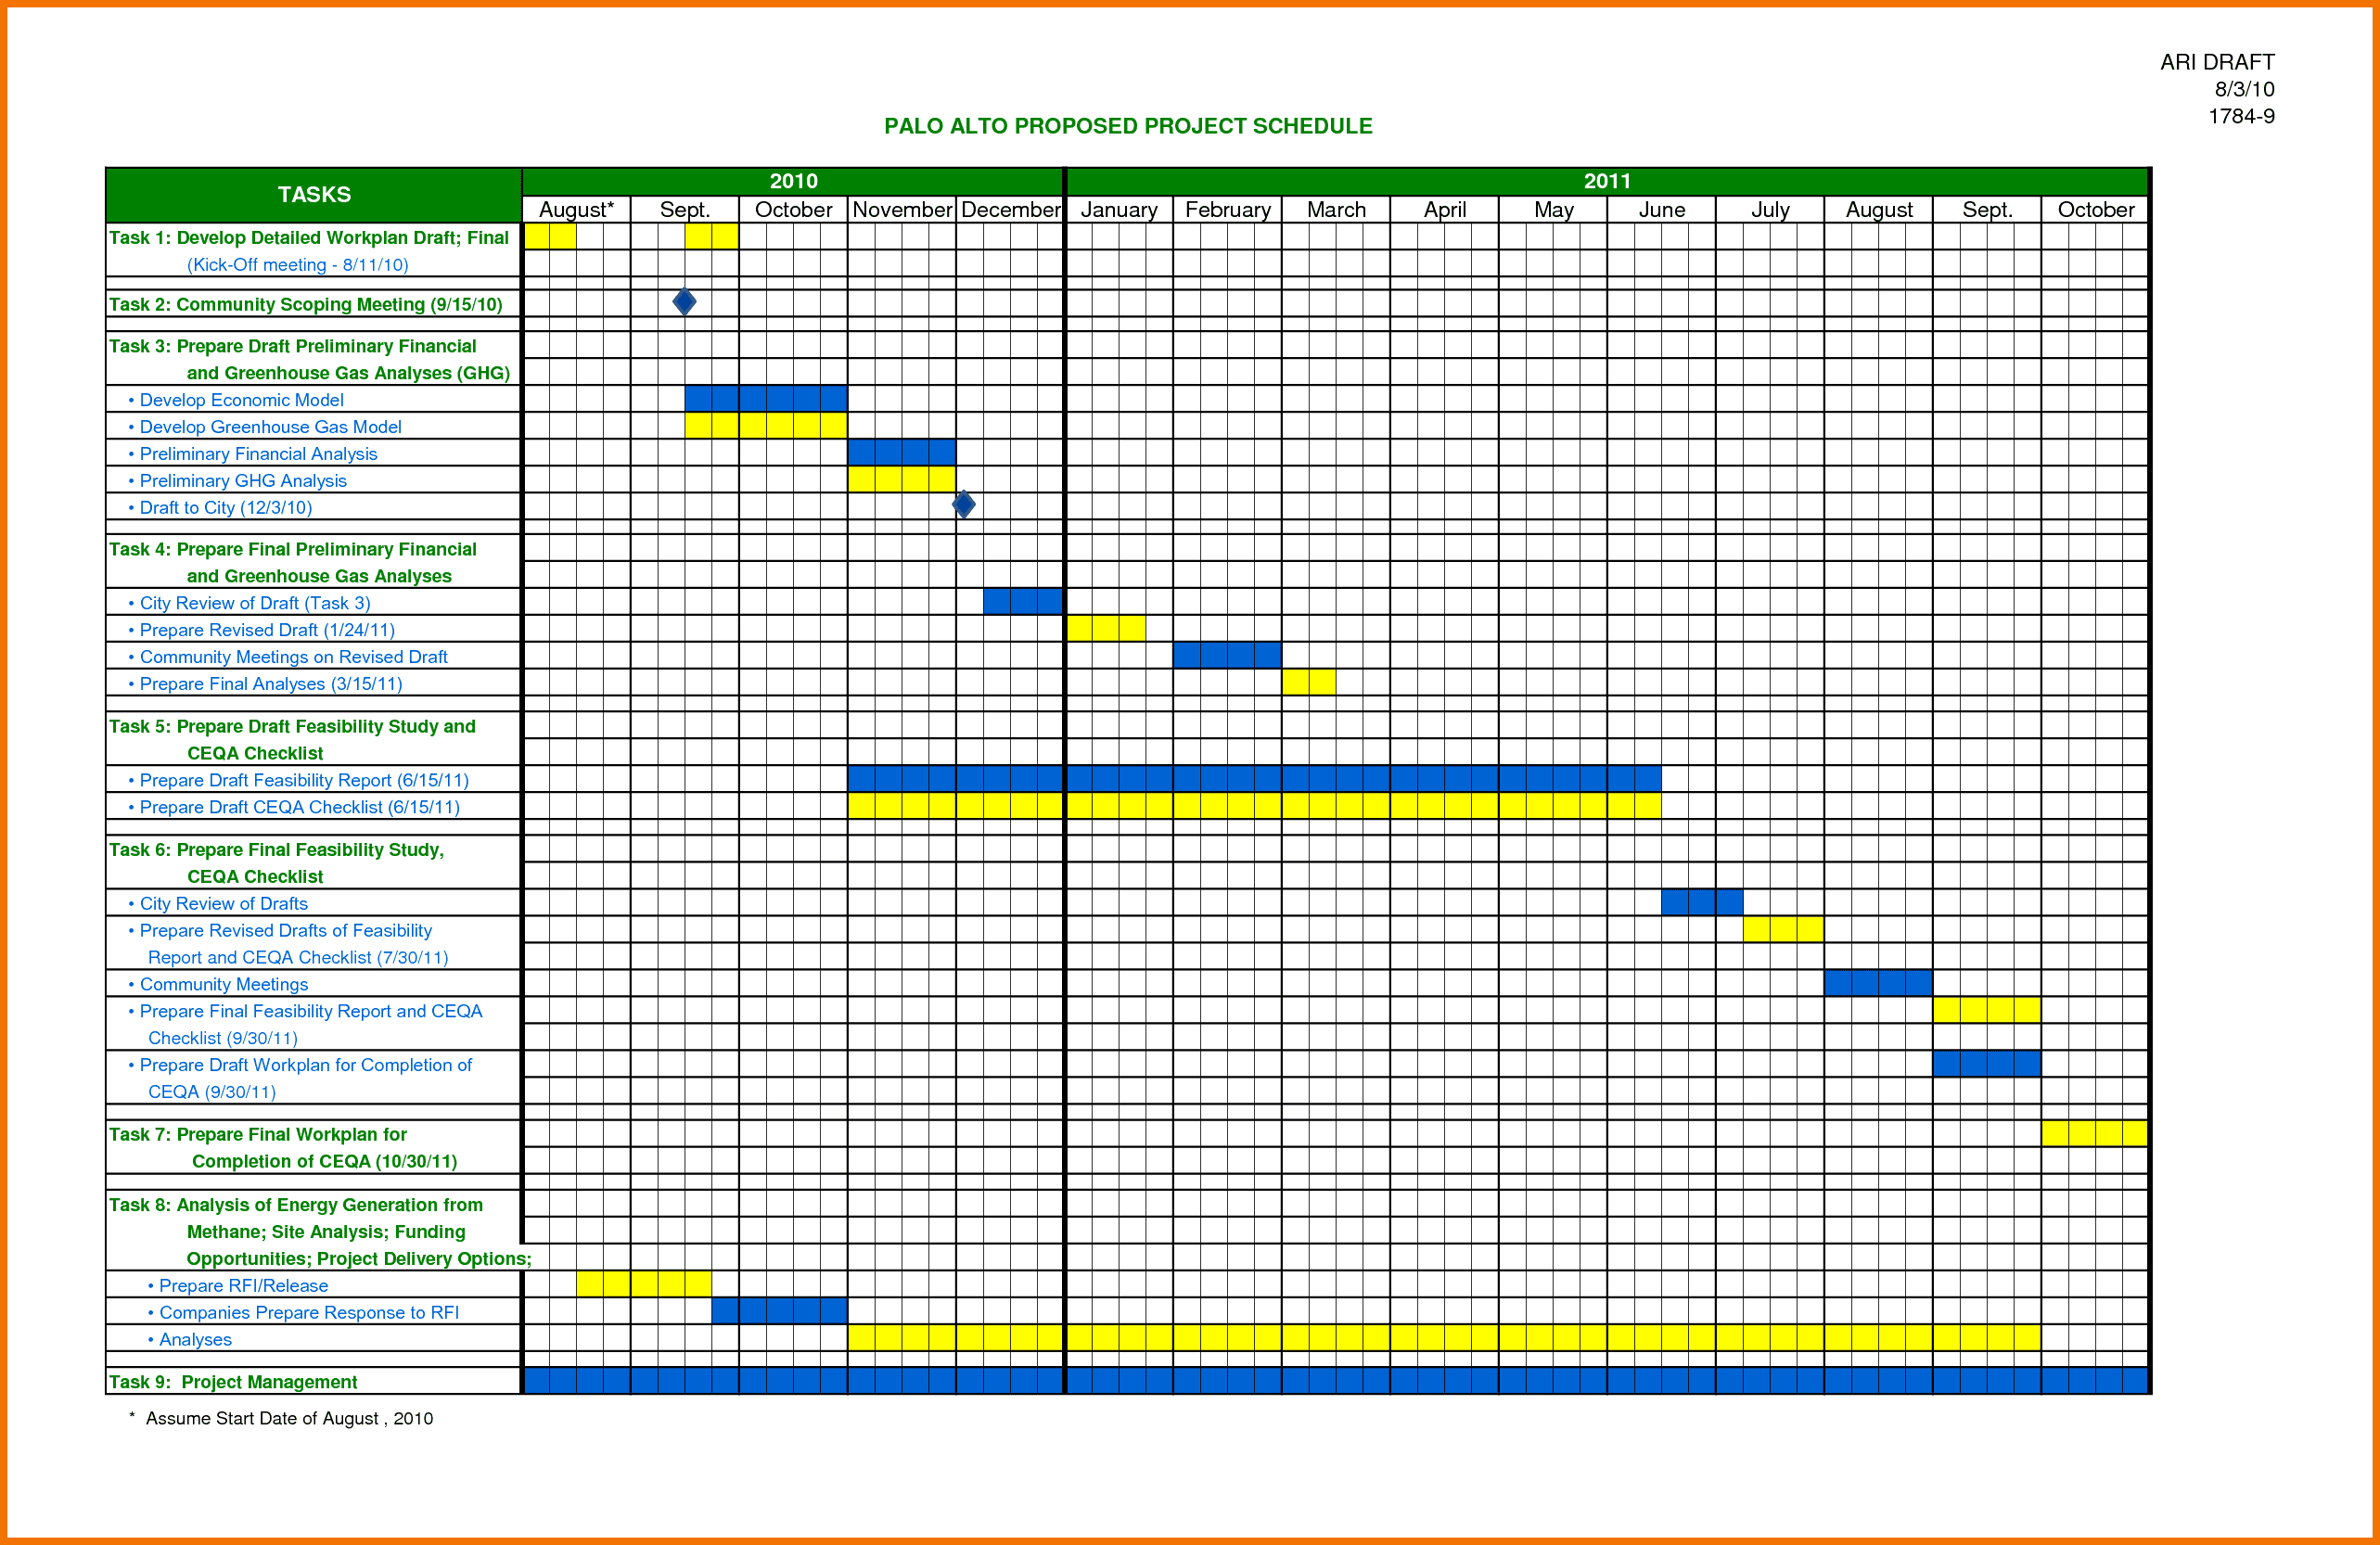 Excel Project Management Template With Gantt Schedule Creation And Project Plan Schedule Template